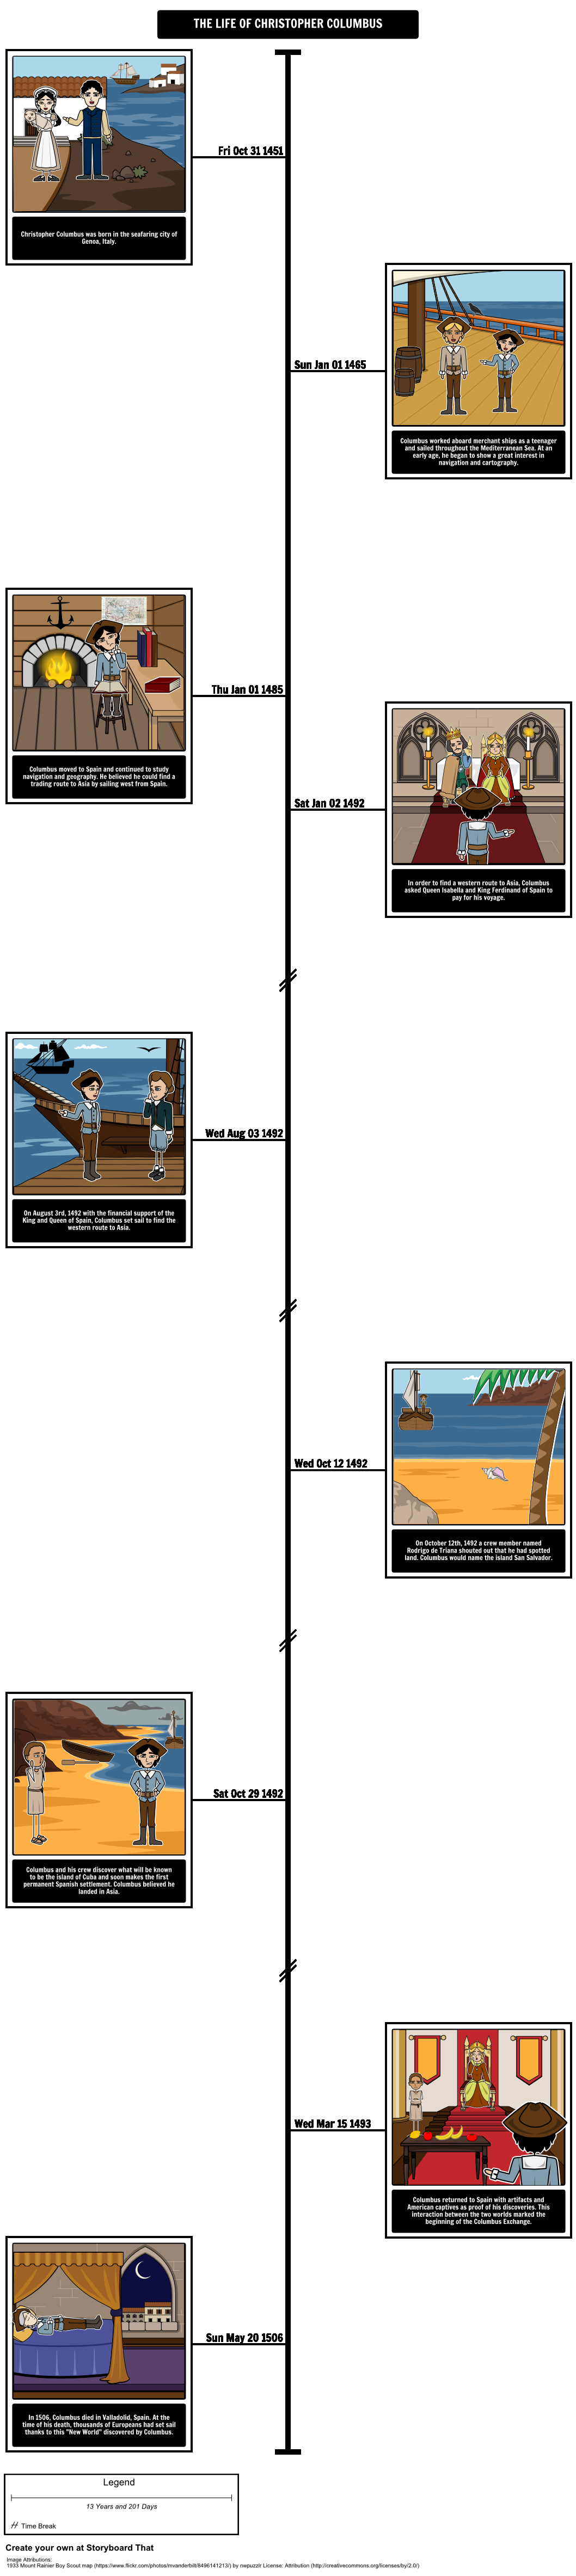 Explorer clipart exploration european. Age of discovery storyboard